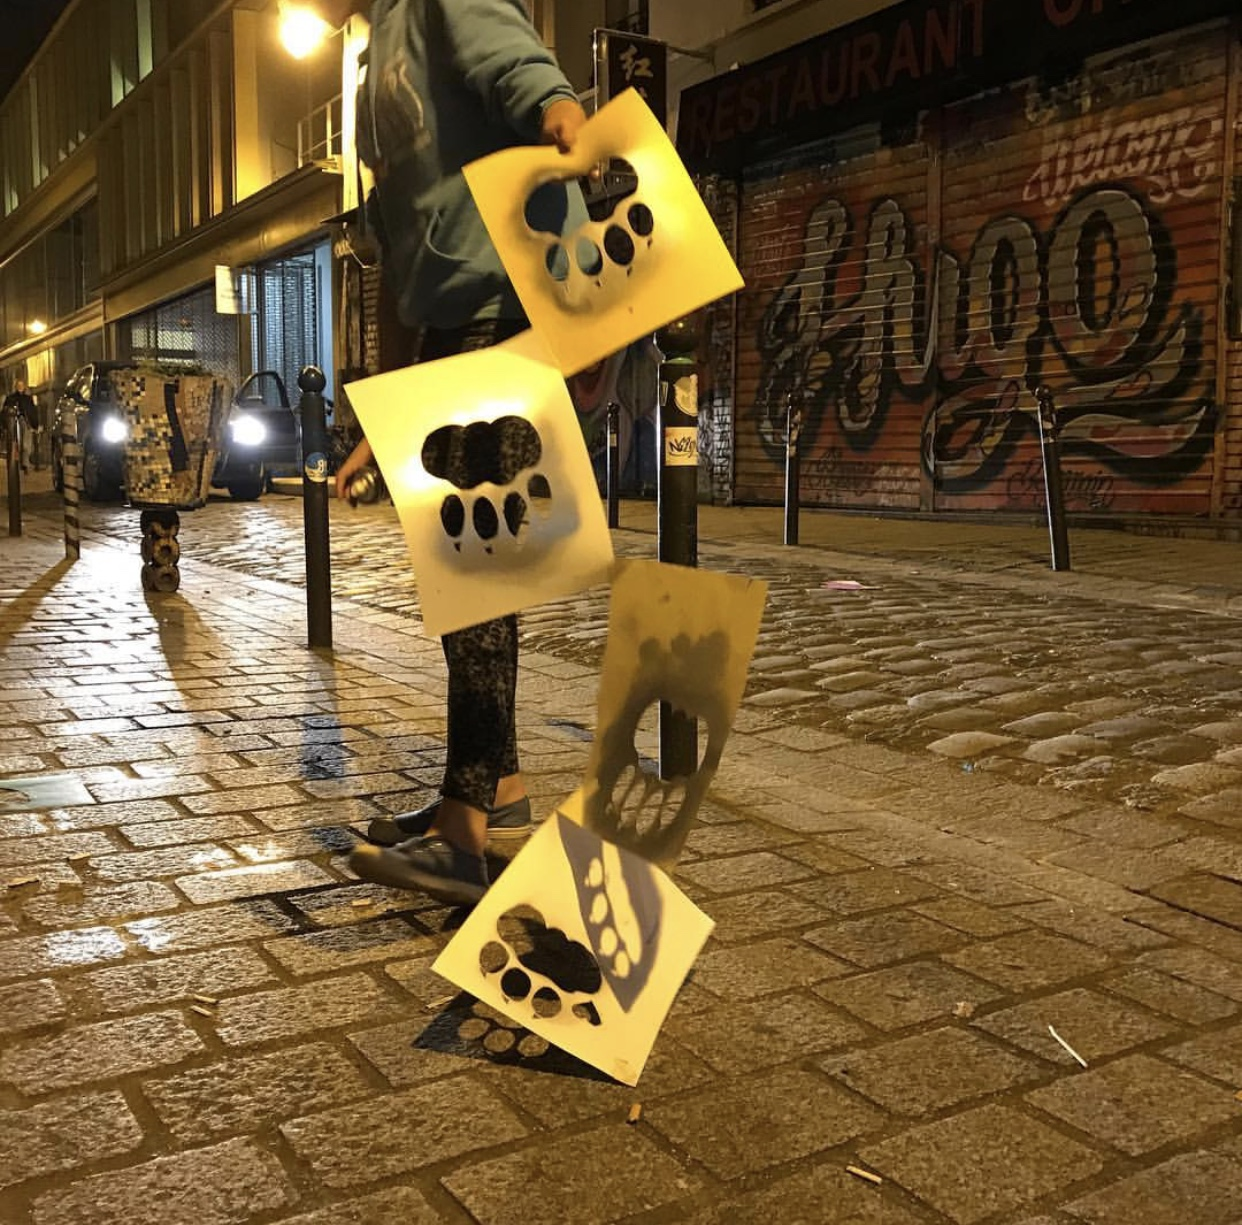 Stencils for Himmy's paw prints flying through the streets of Paris. Summer 2017